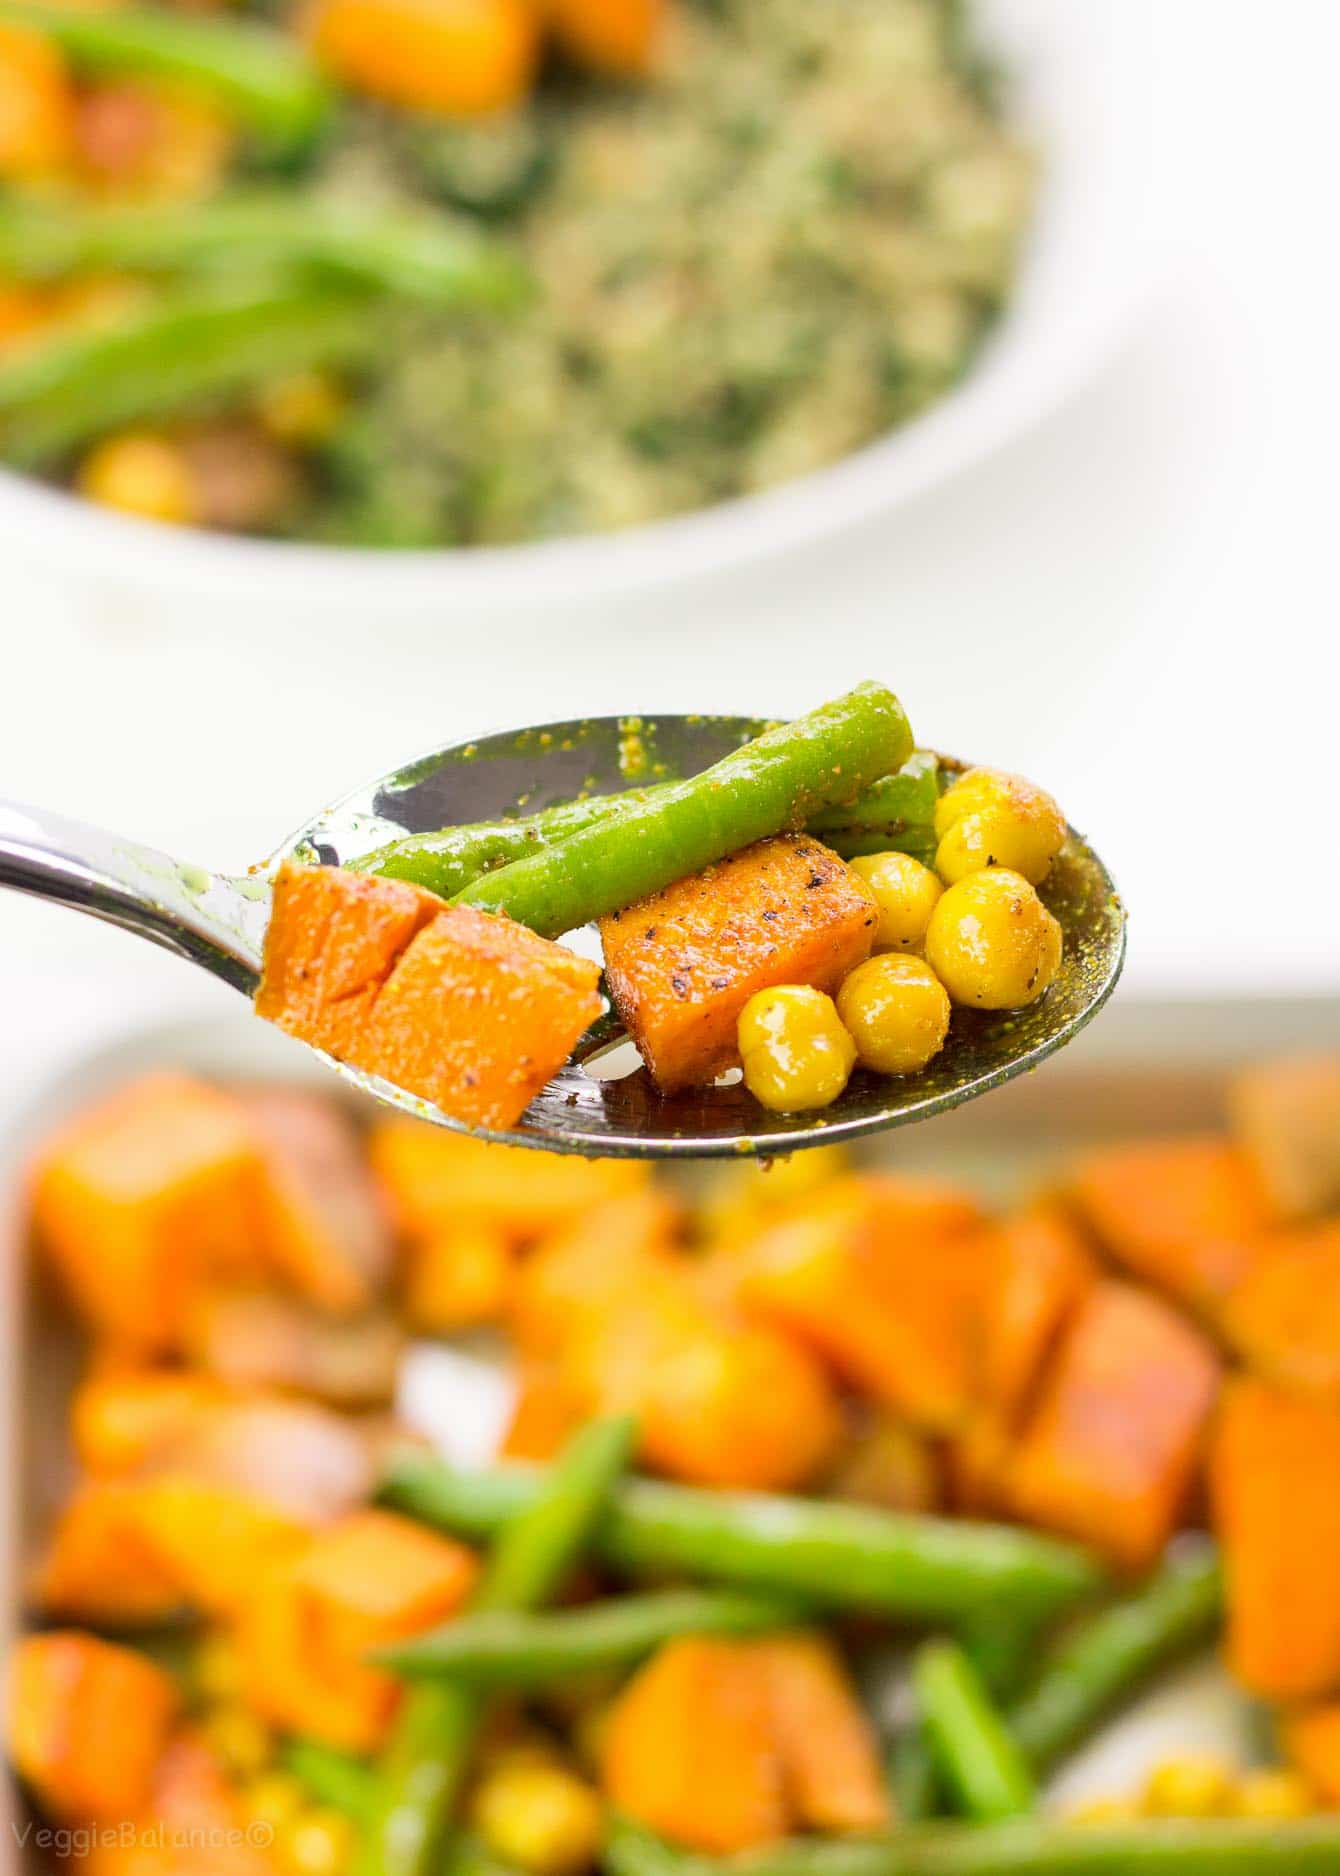 Turmeric Roasted Sweet Potato, Green Beans and Crunchy Chickpeas are what's shakin' for dinner tonight. Easy weeknight-meal-for-the-win with this healthy sheet pan dinner. (Gluten-Free, Dairy-Free, Vegan)